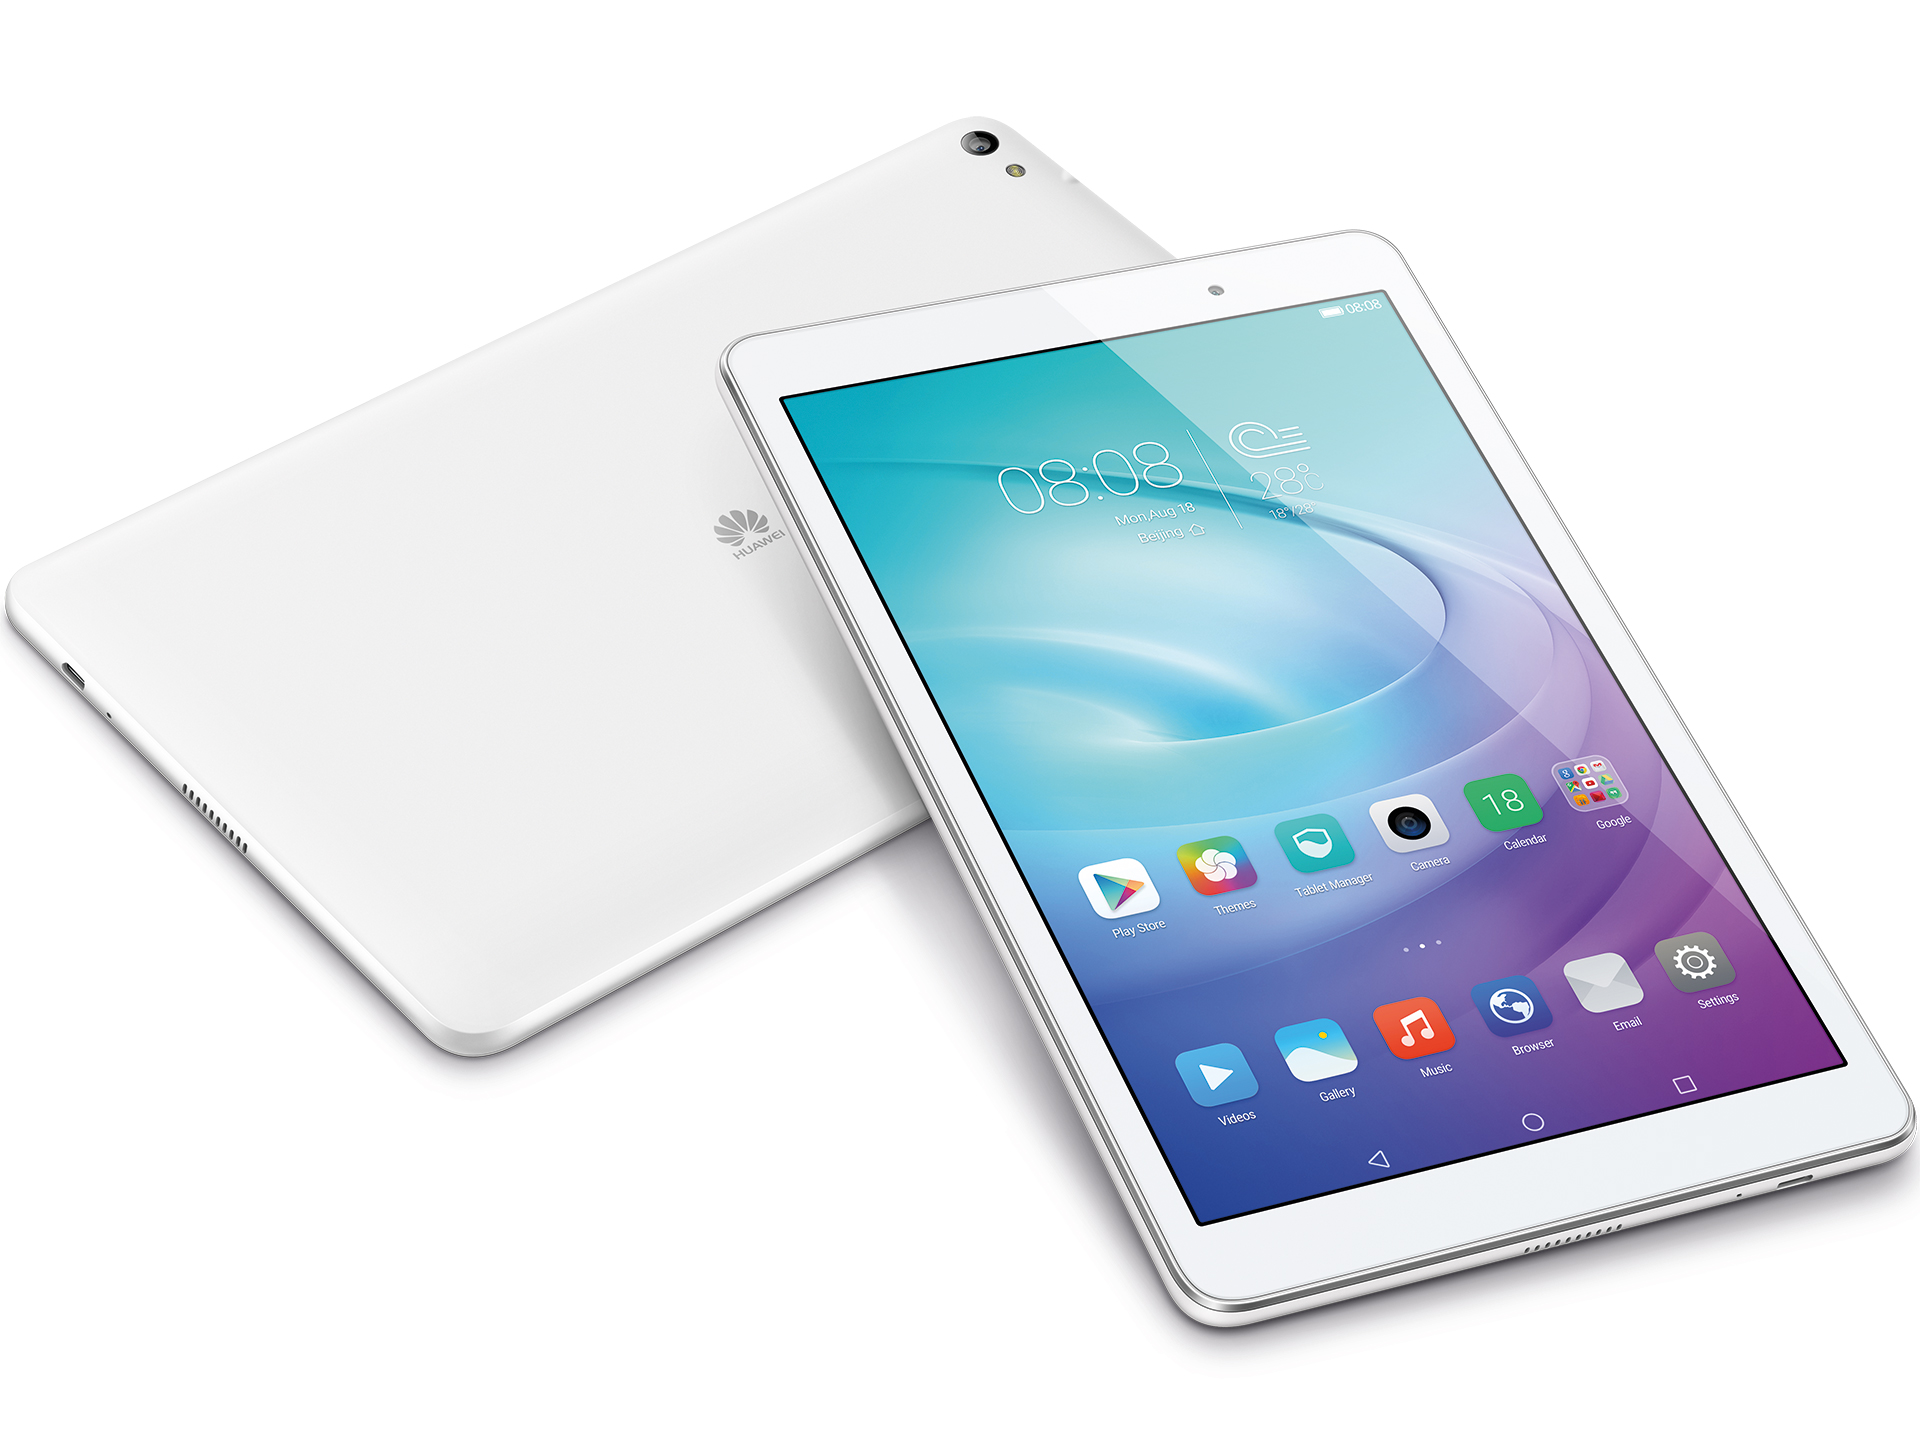 10 0: Huawei MediaPad T2 10.0 Pro Tablet Review